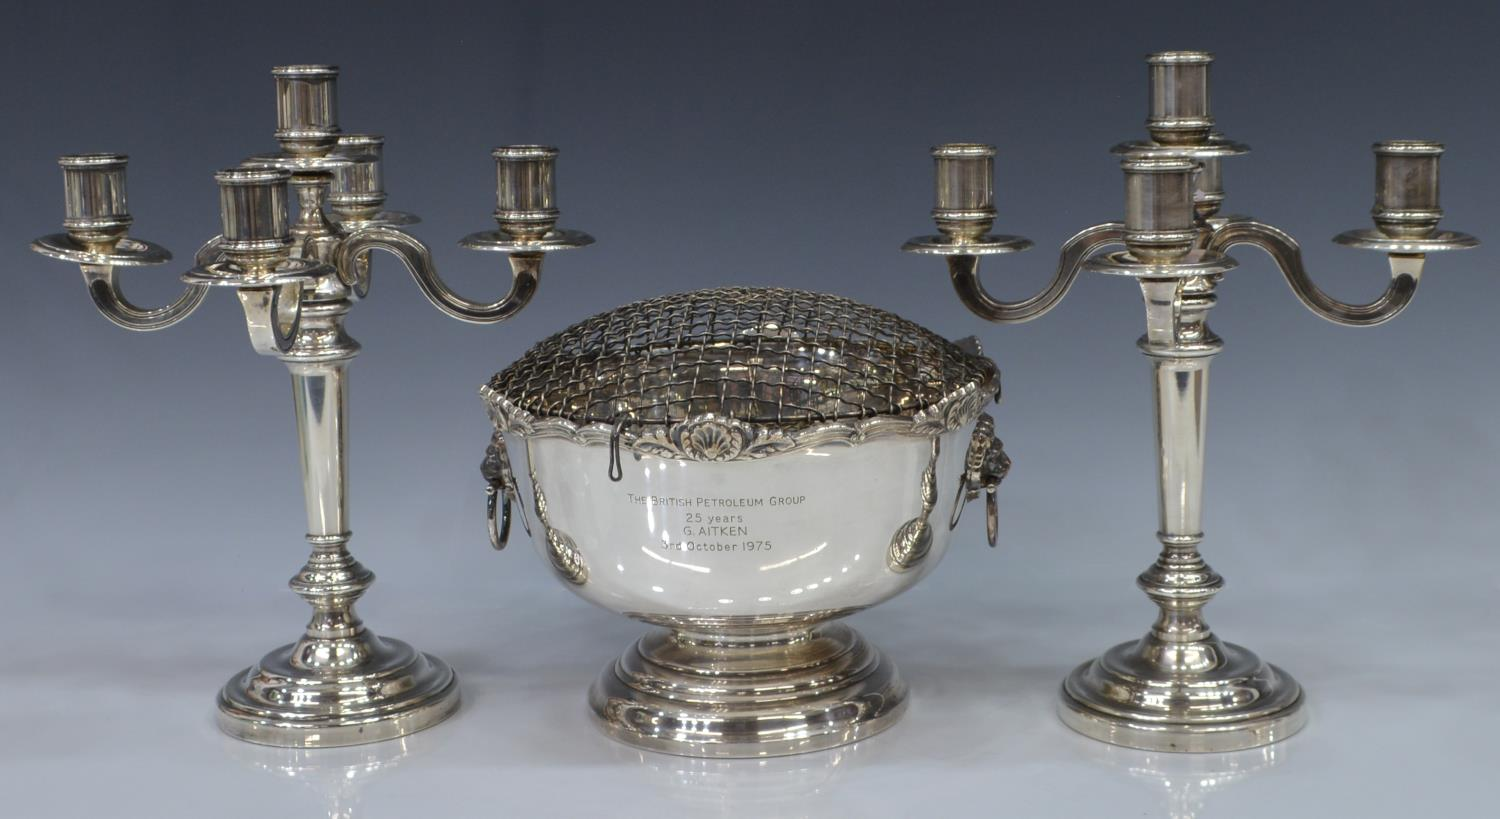 3 christofle garrard silverplate table items luxury for Transmutation table 85 items